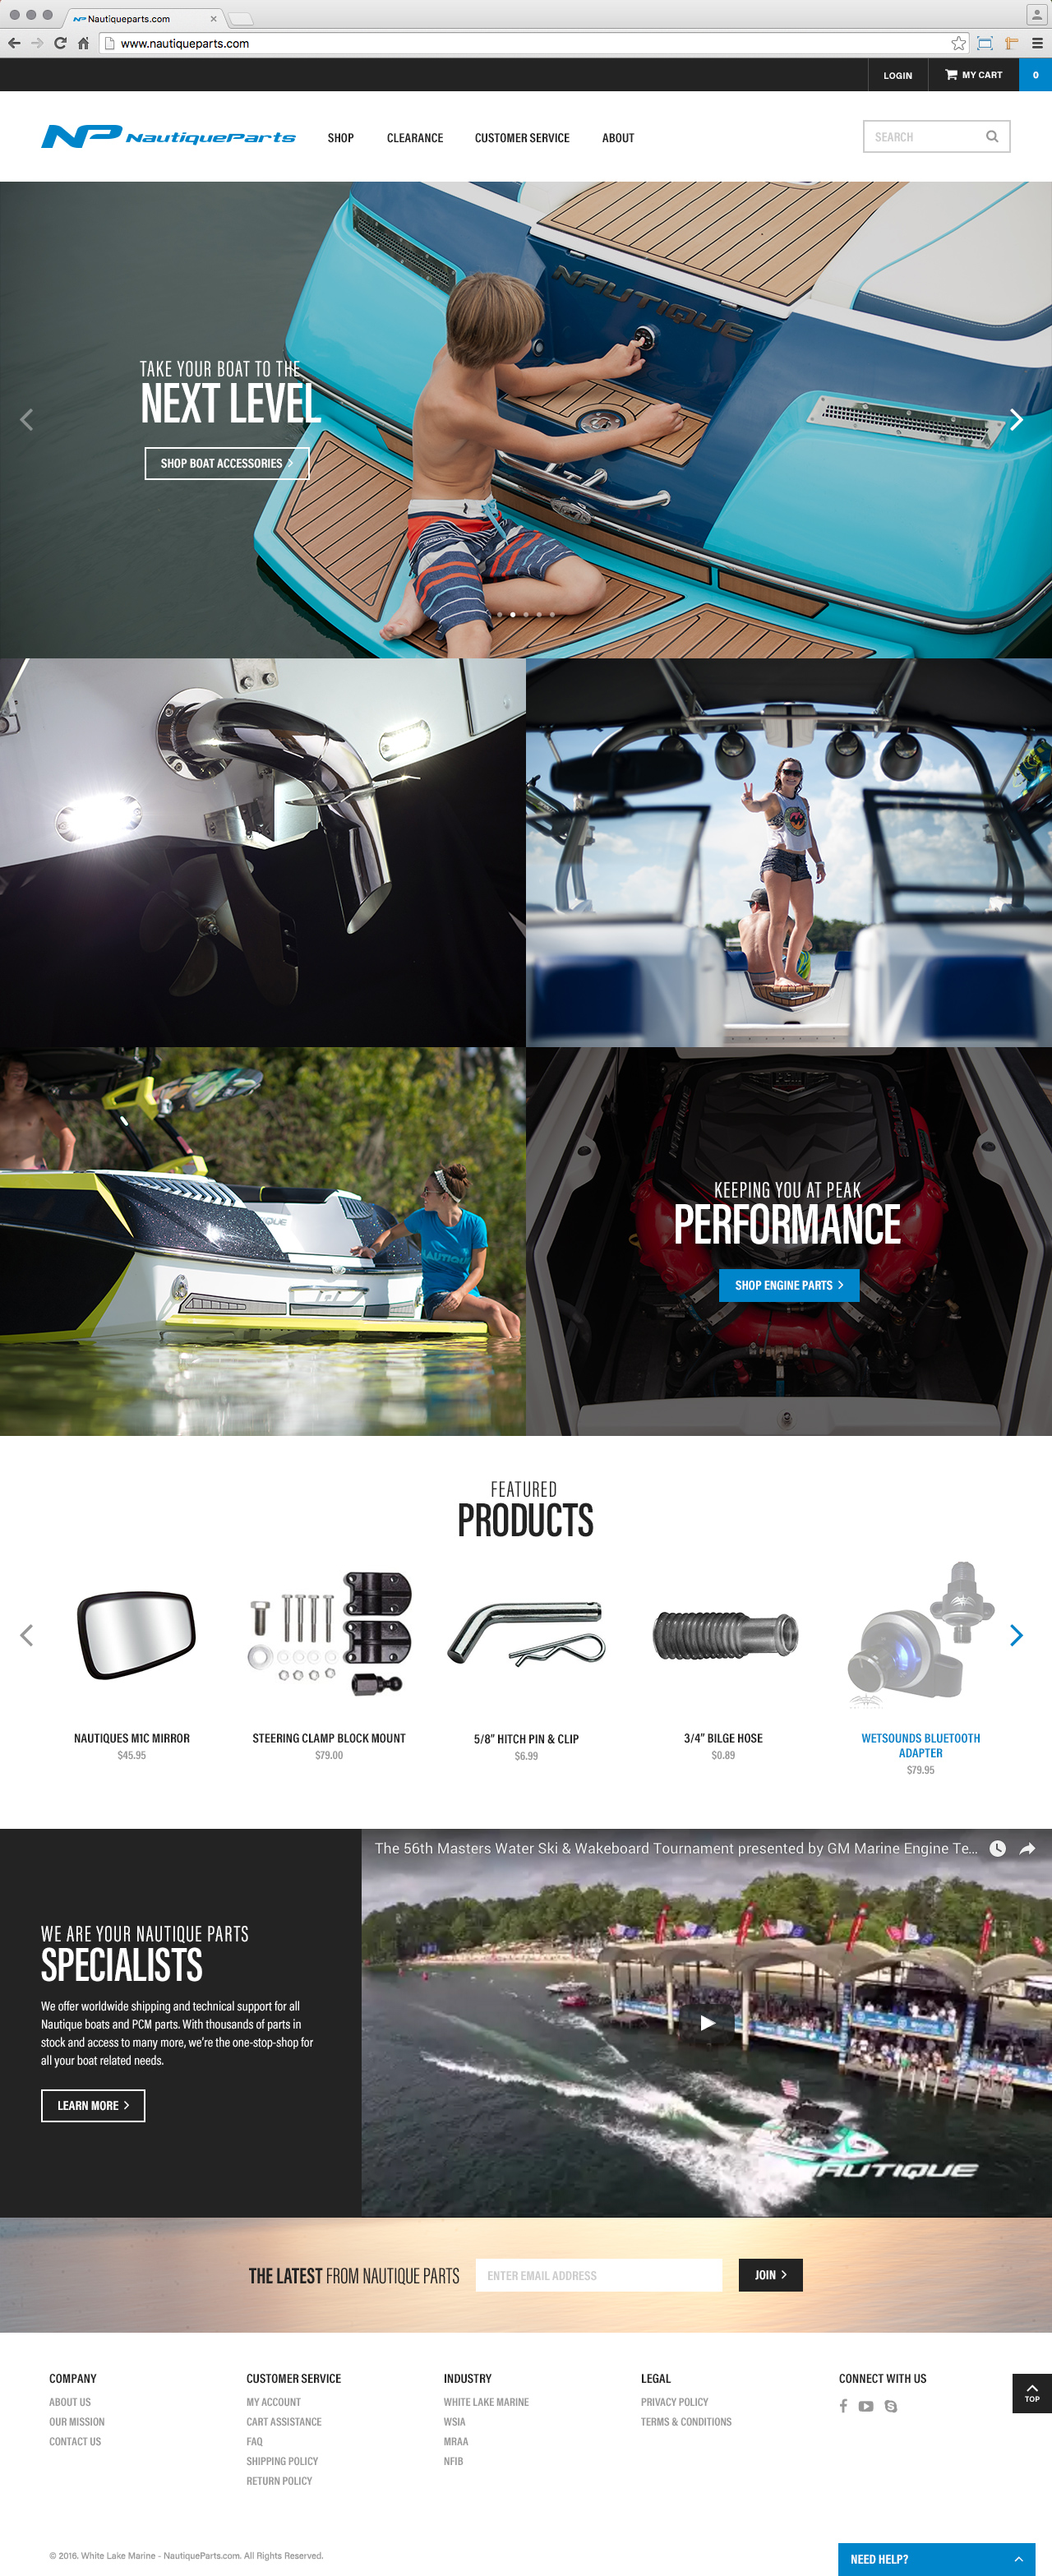 nautique-parts-boat-accessories-ecommerce-website-development